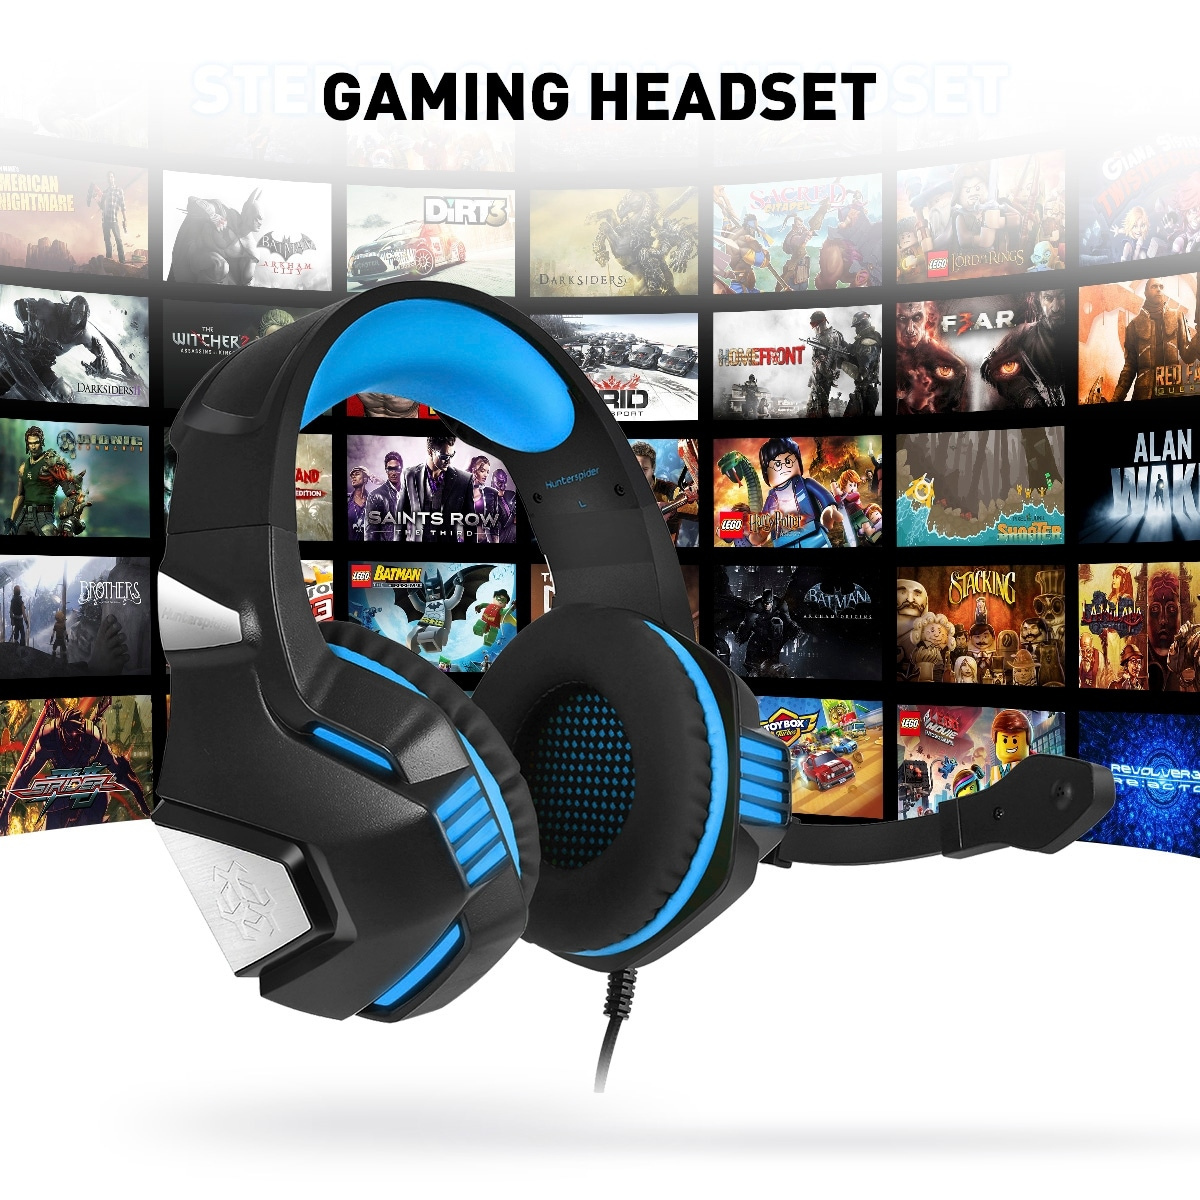 Gaming Headset for PS4 Xbox One, Over Ear Gaming Headphones with Mic